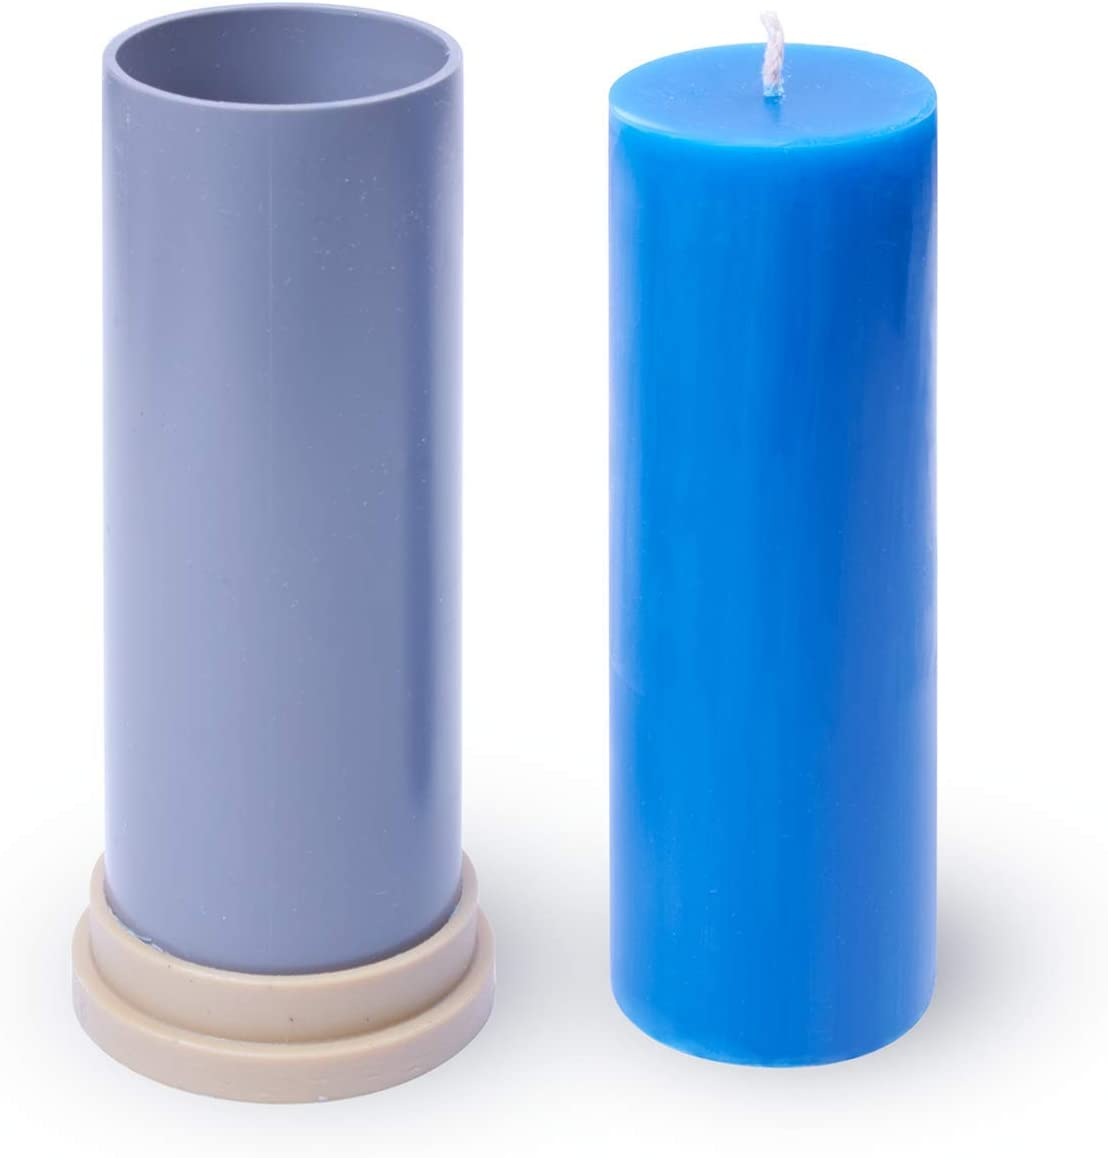 Candle Molds for Making Candles by Candle Shop review